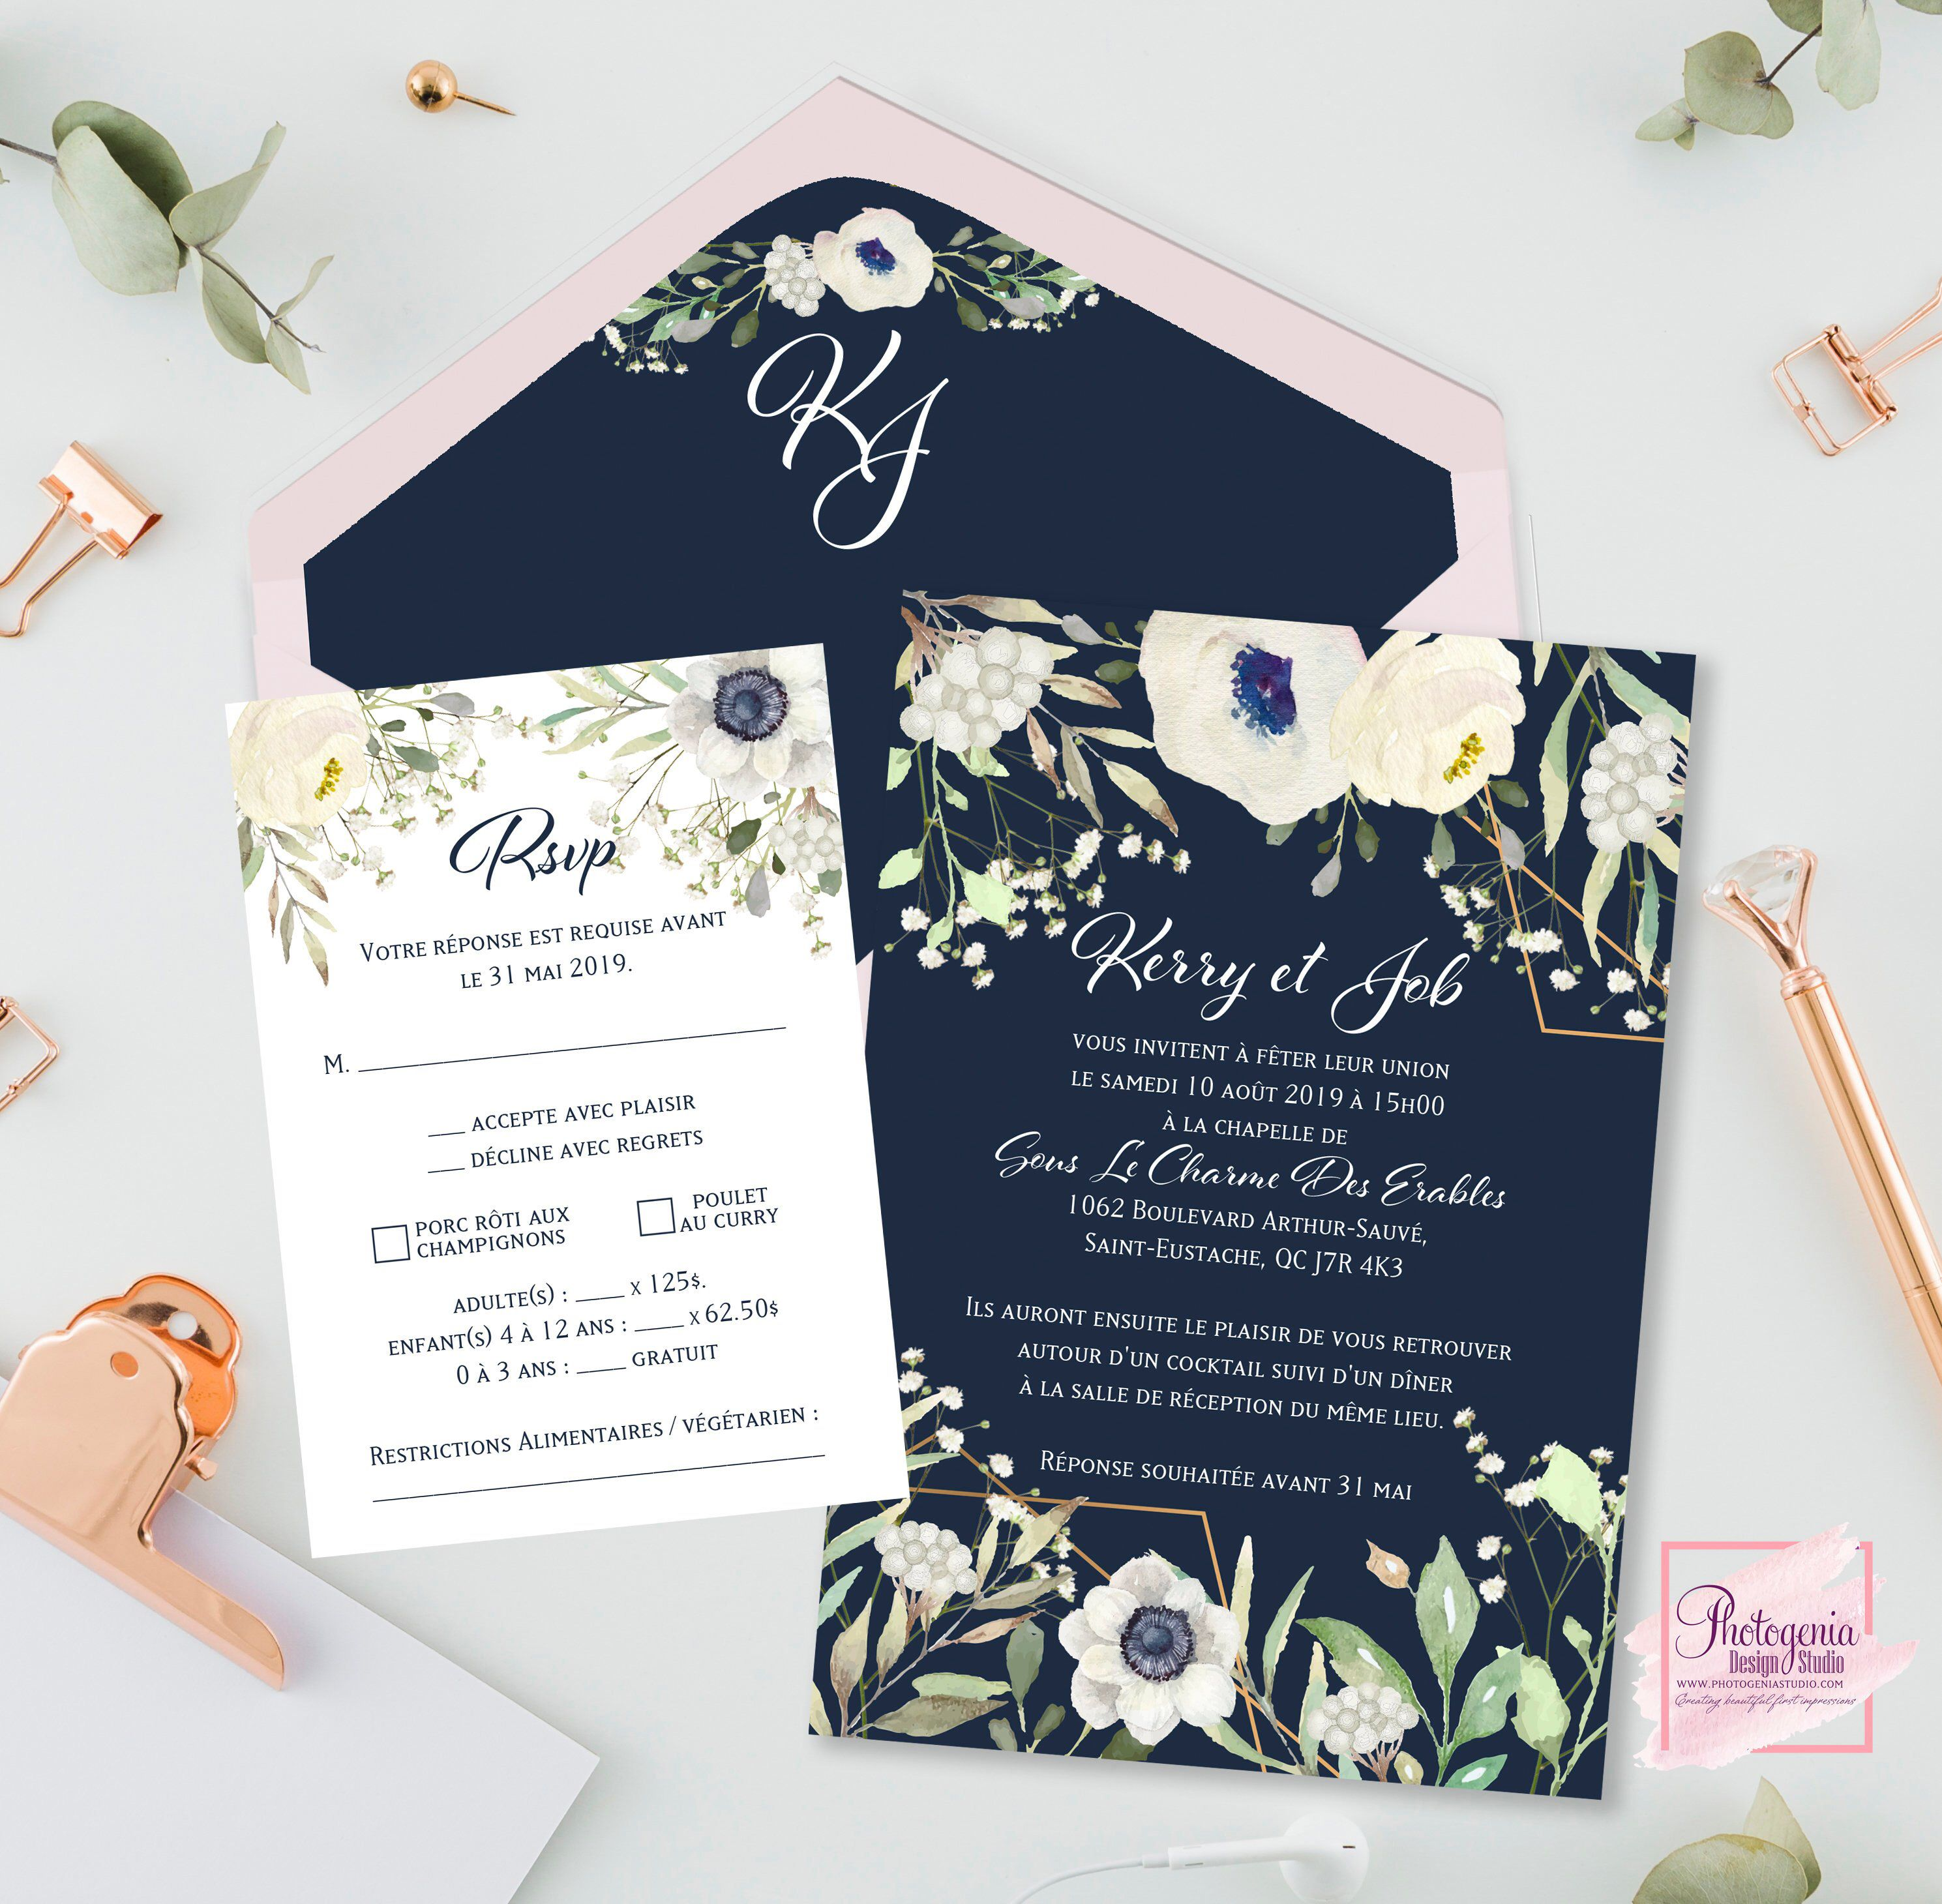 photo relating to Etsy Wedding Invitations Printable identified as PRINTABLE Marriage ceremony Invitation, Wedding day Invitation Template